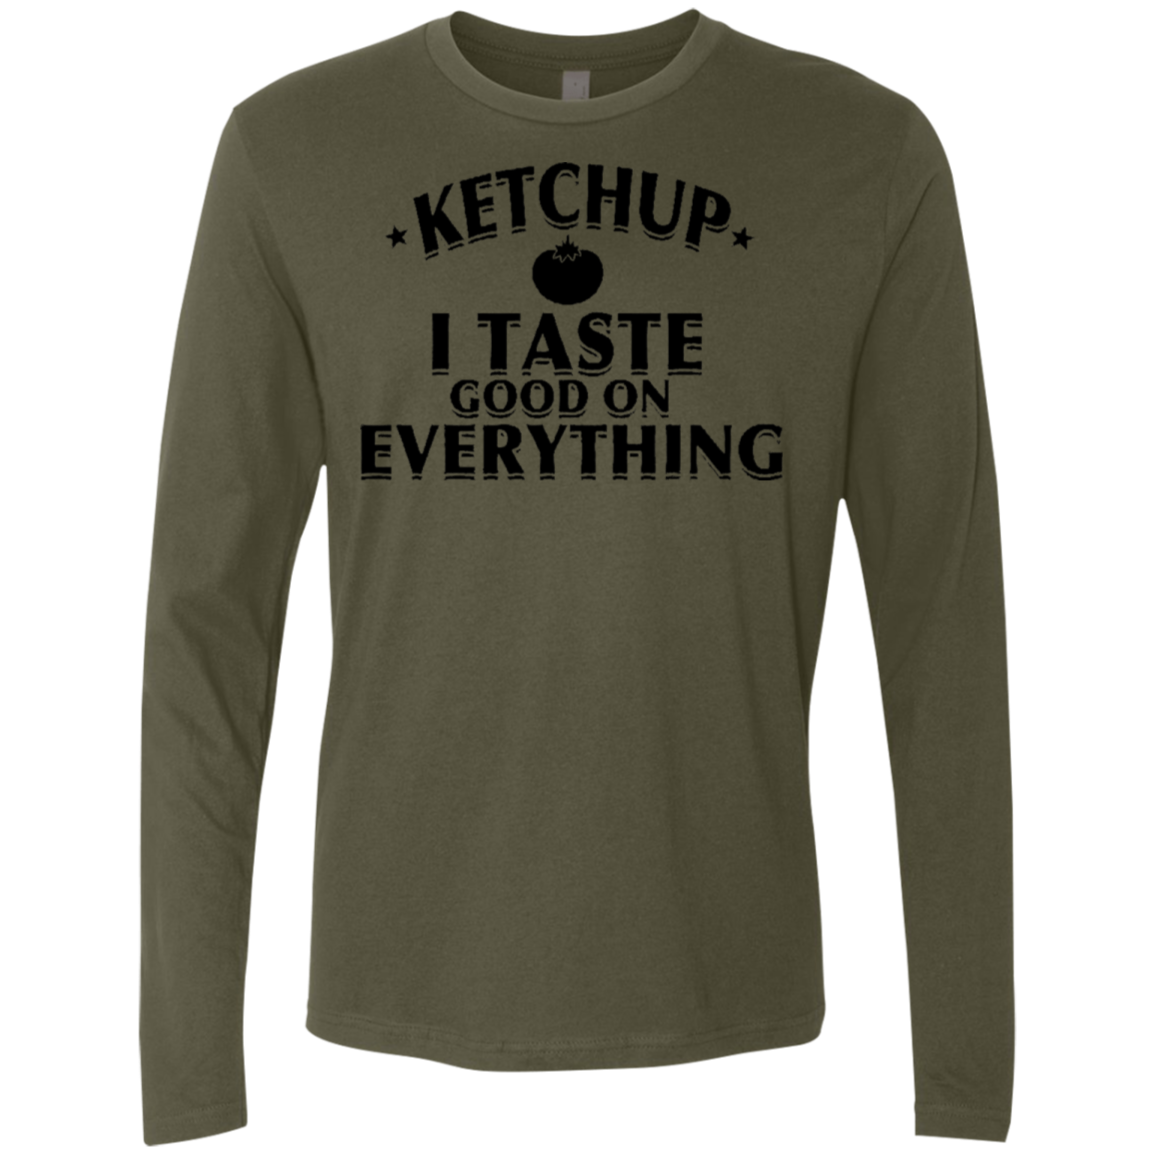 Ketchup I Taste Good On Everything Men's Long Sleeve Tee